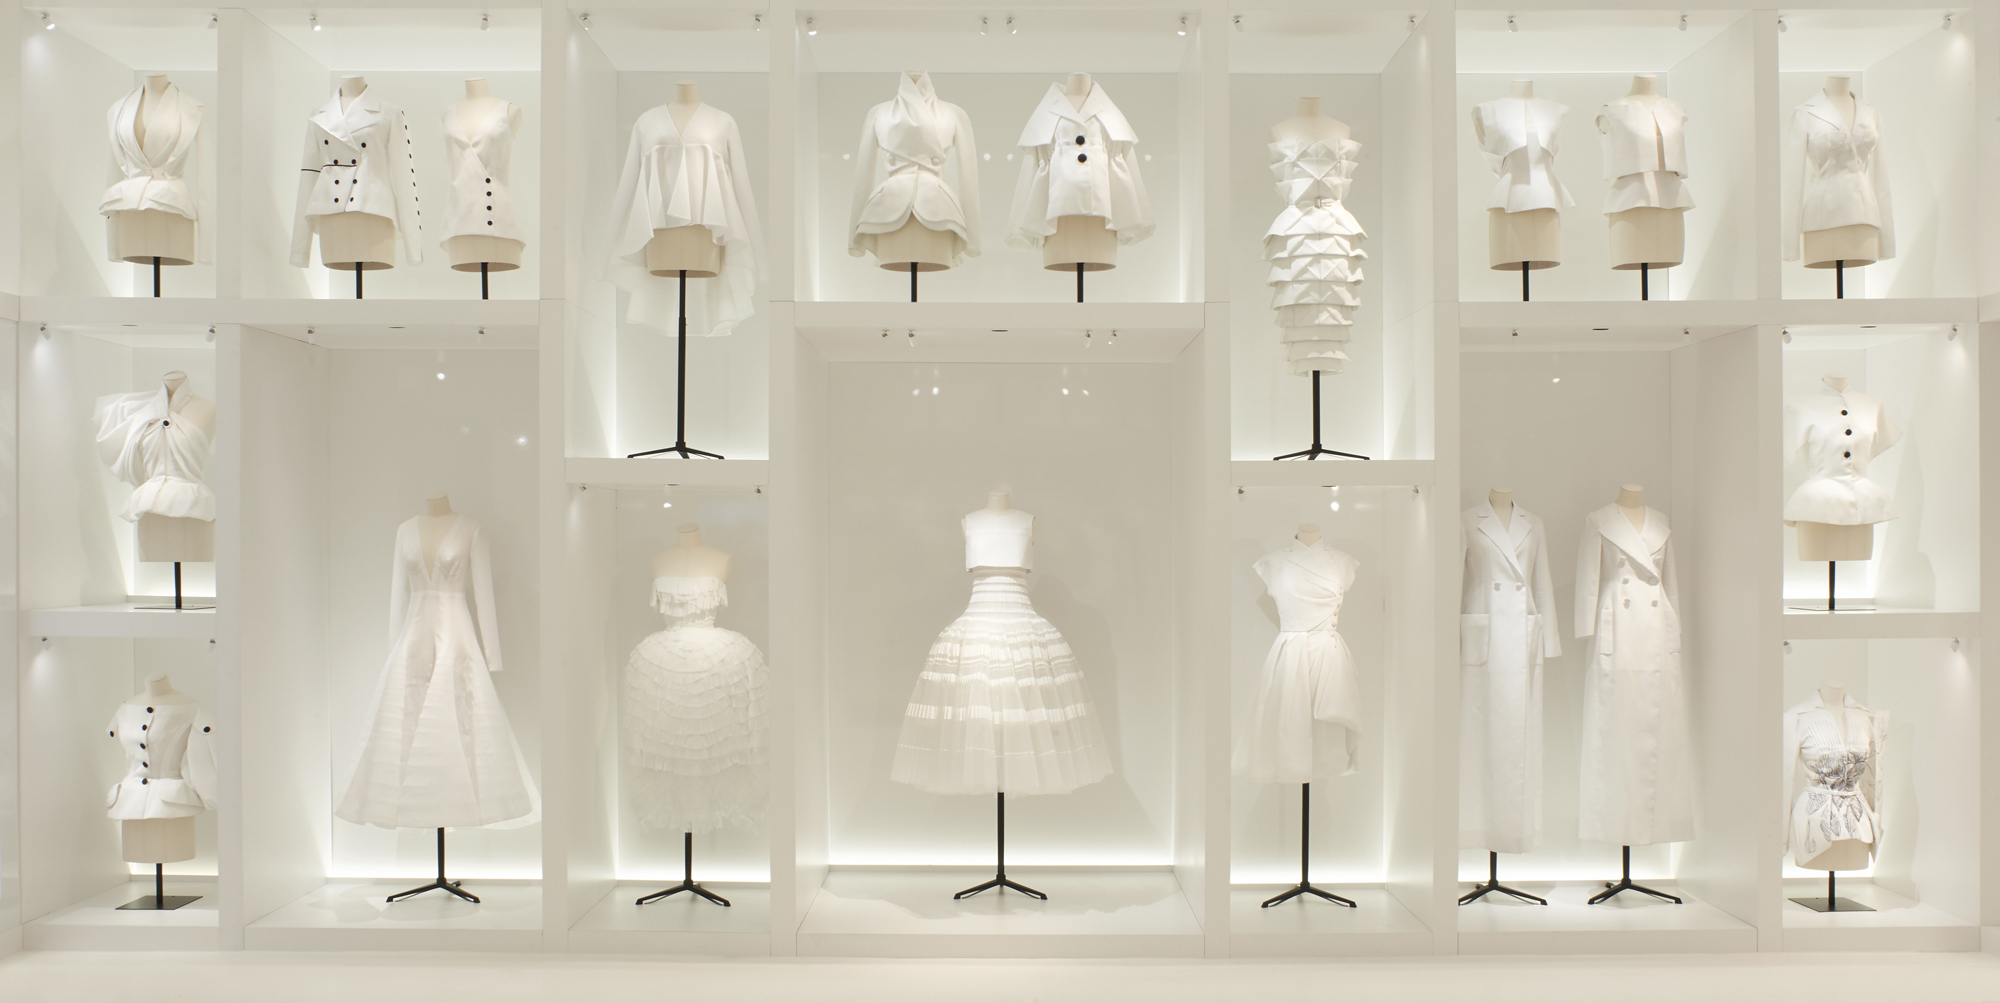 Christian Dior Couture Shopwindow exhibition Christian Dior Desiggner of dreams Maria Queralt Portfolio